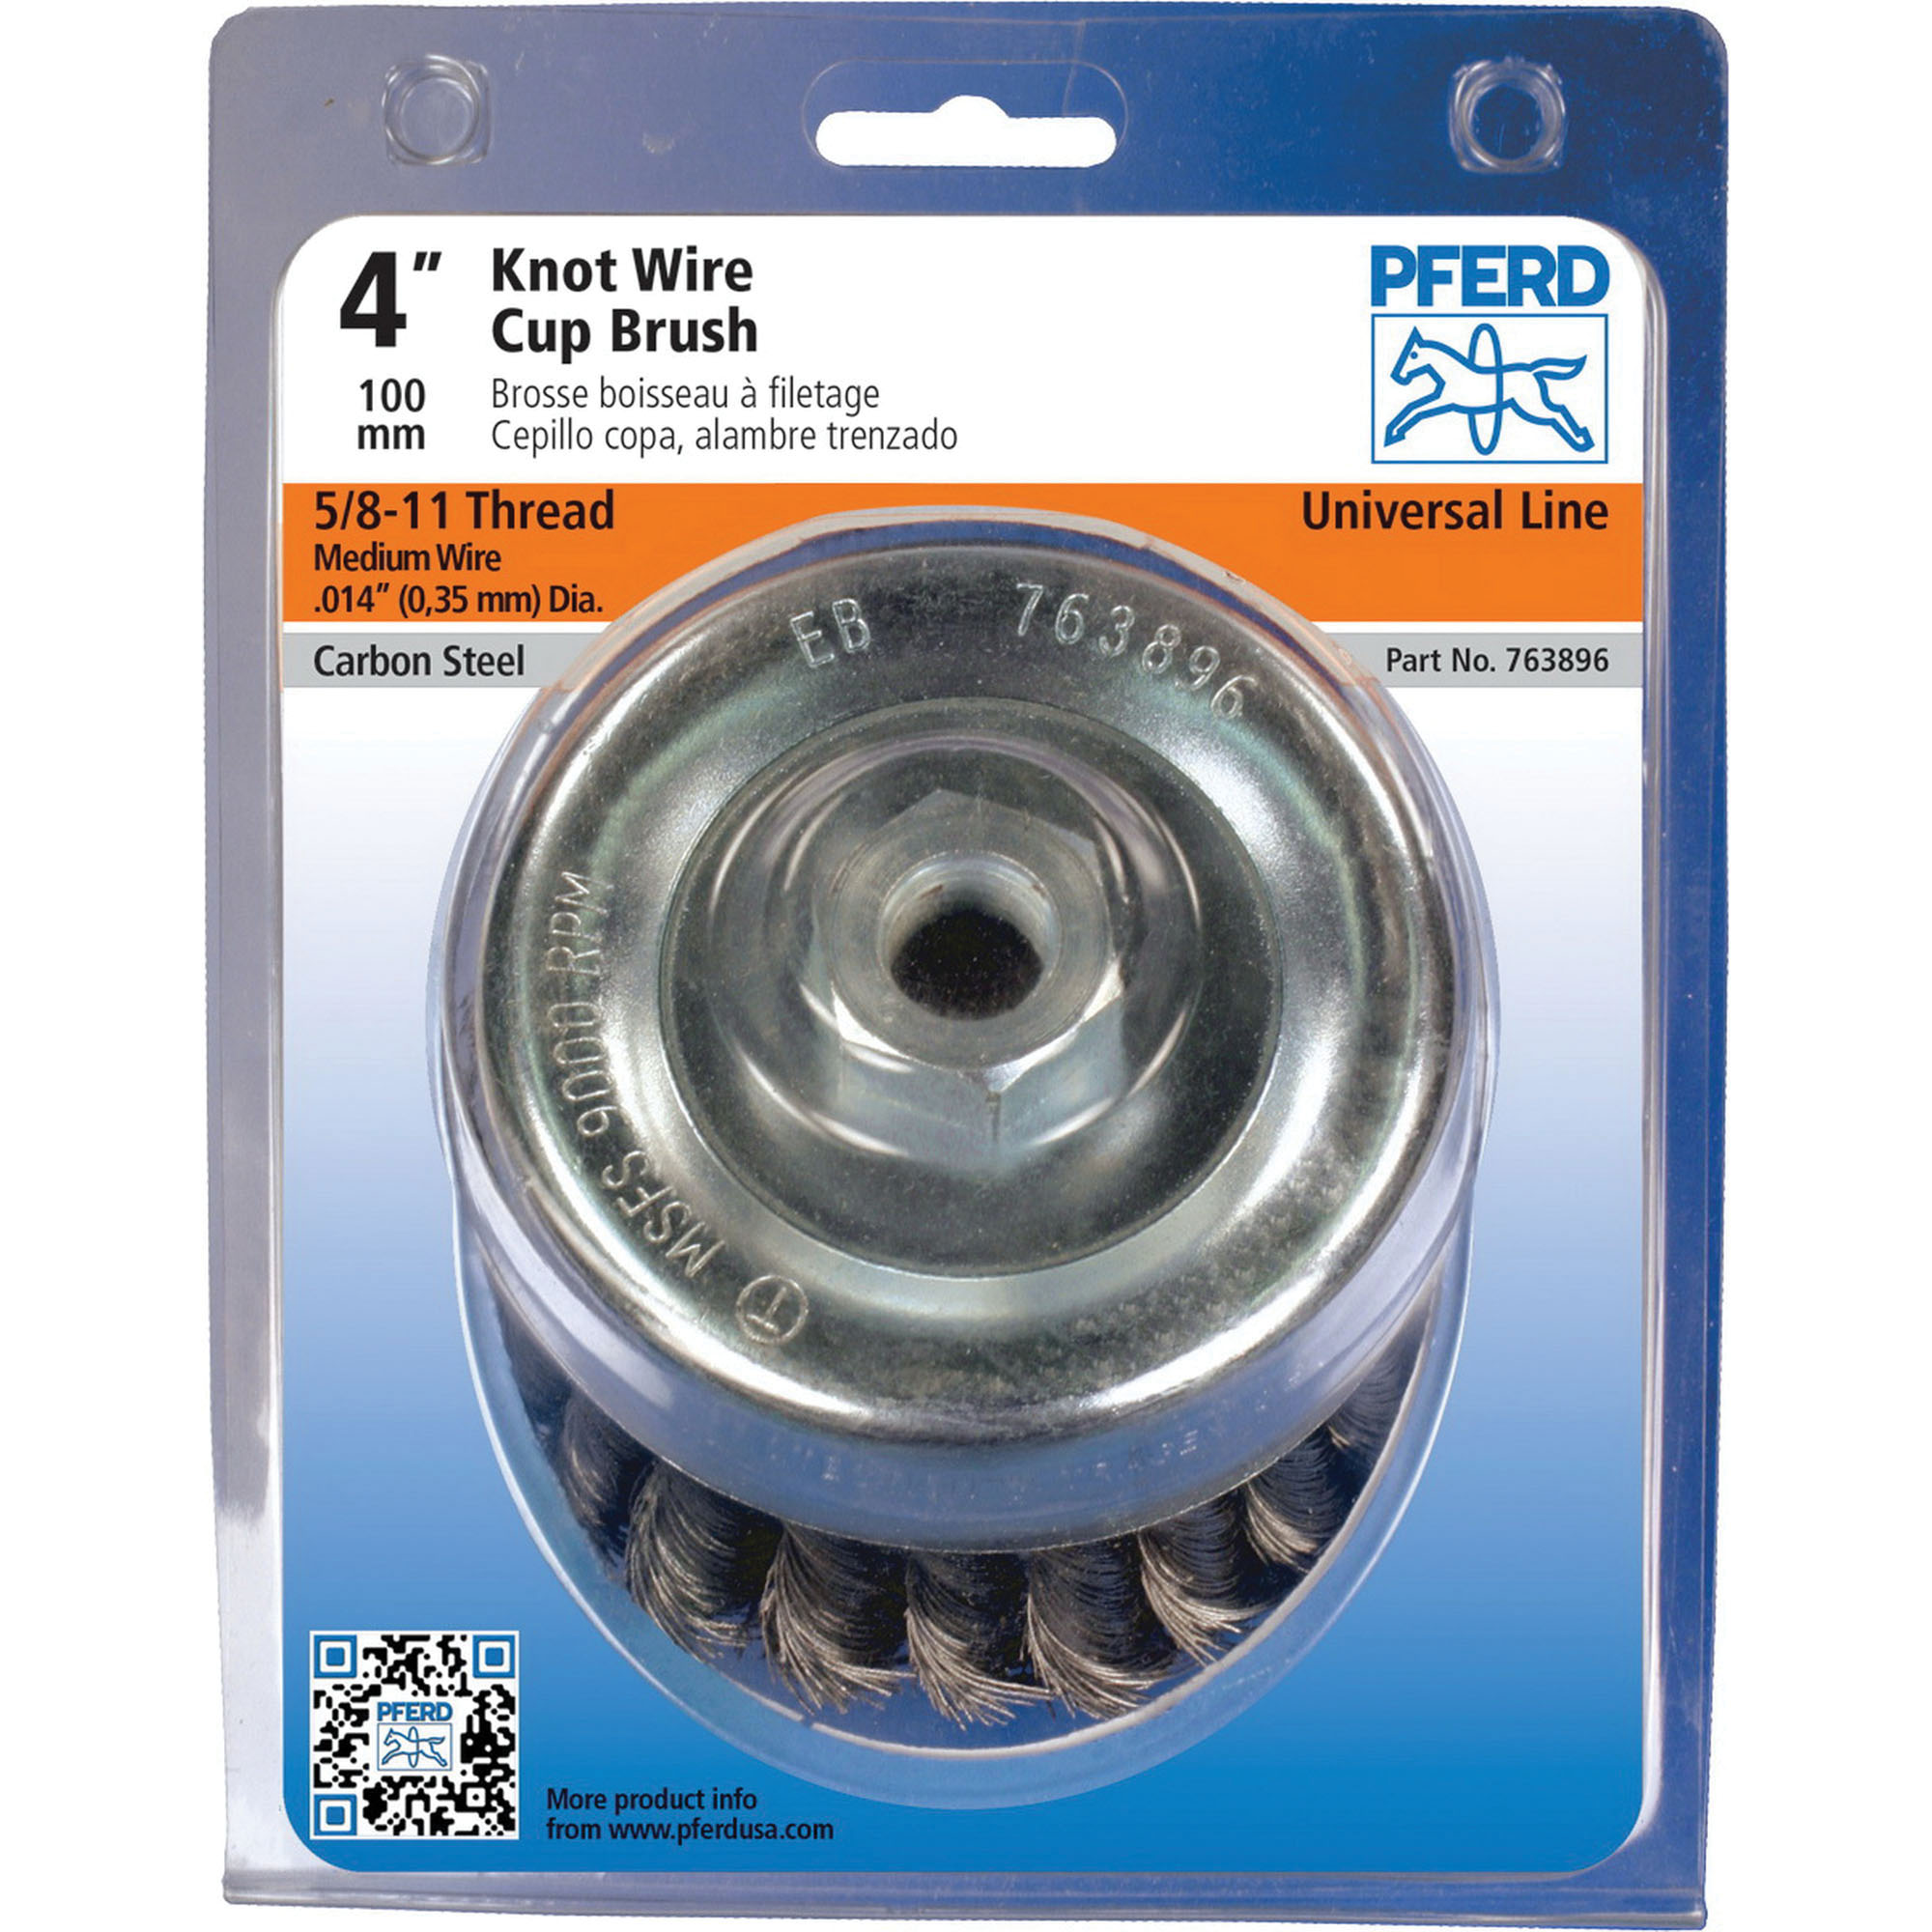 PFERD 764268 Stainless Steel Knot Wire Unbridled Cup Brush, 2-3/4 in Dia, 1/2 in Arbor/Shank, 14000 rpm